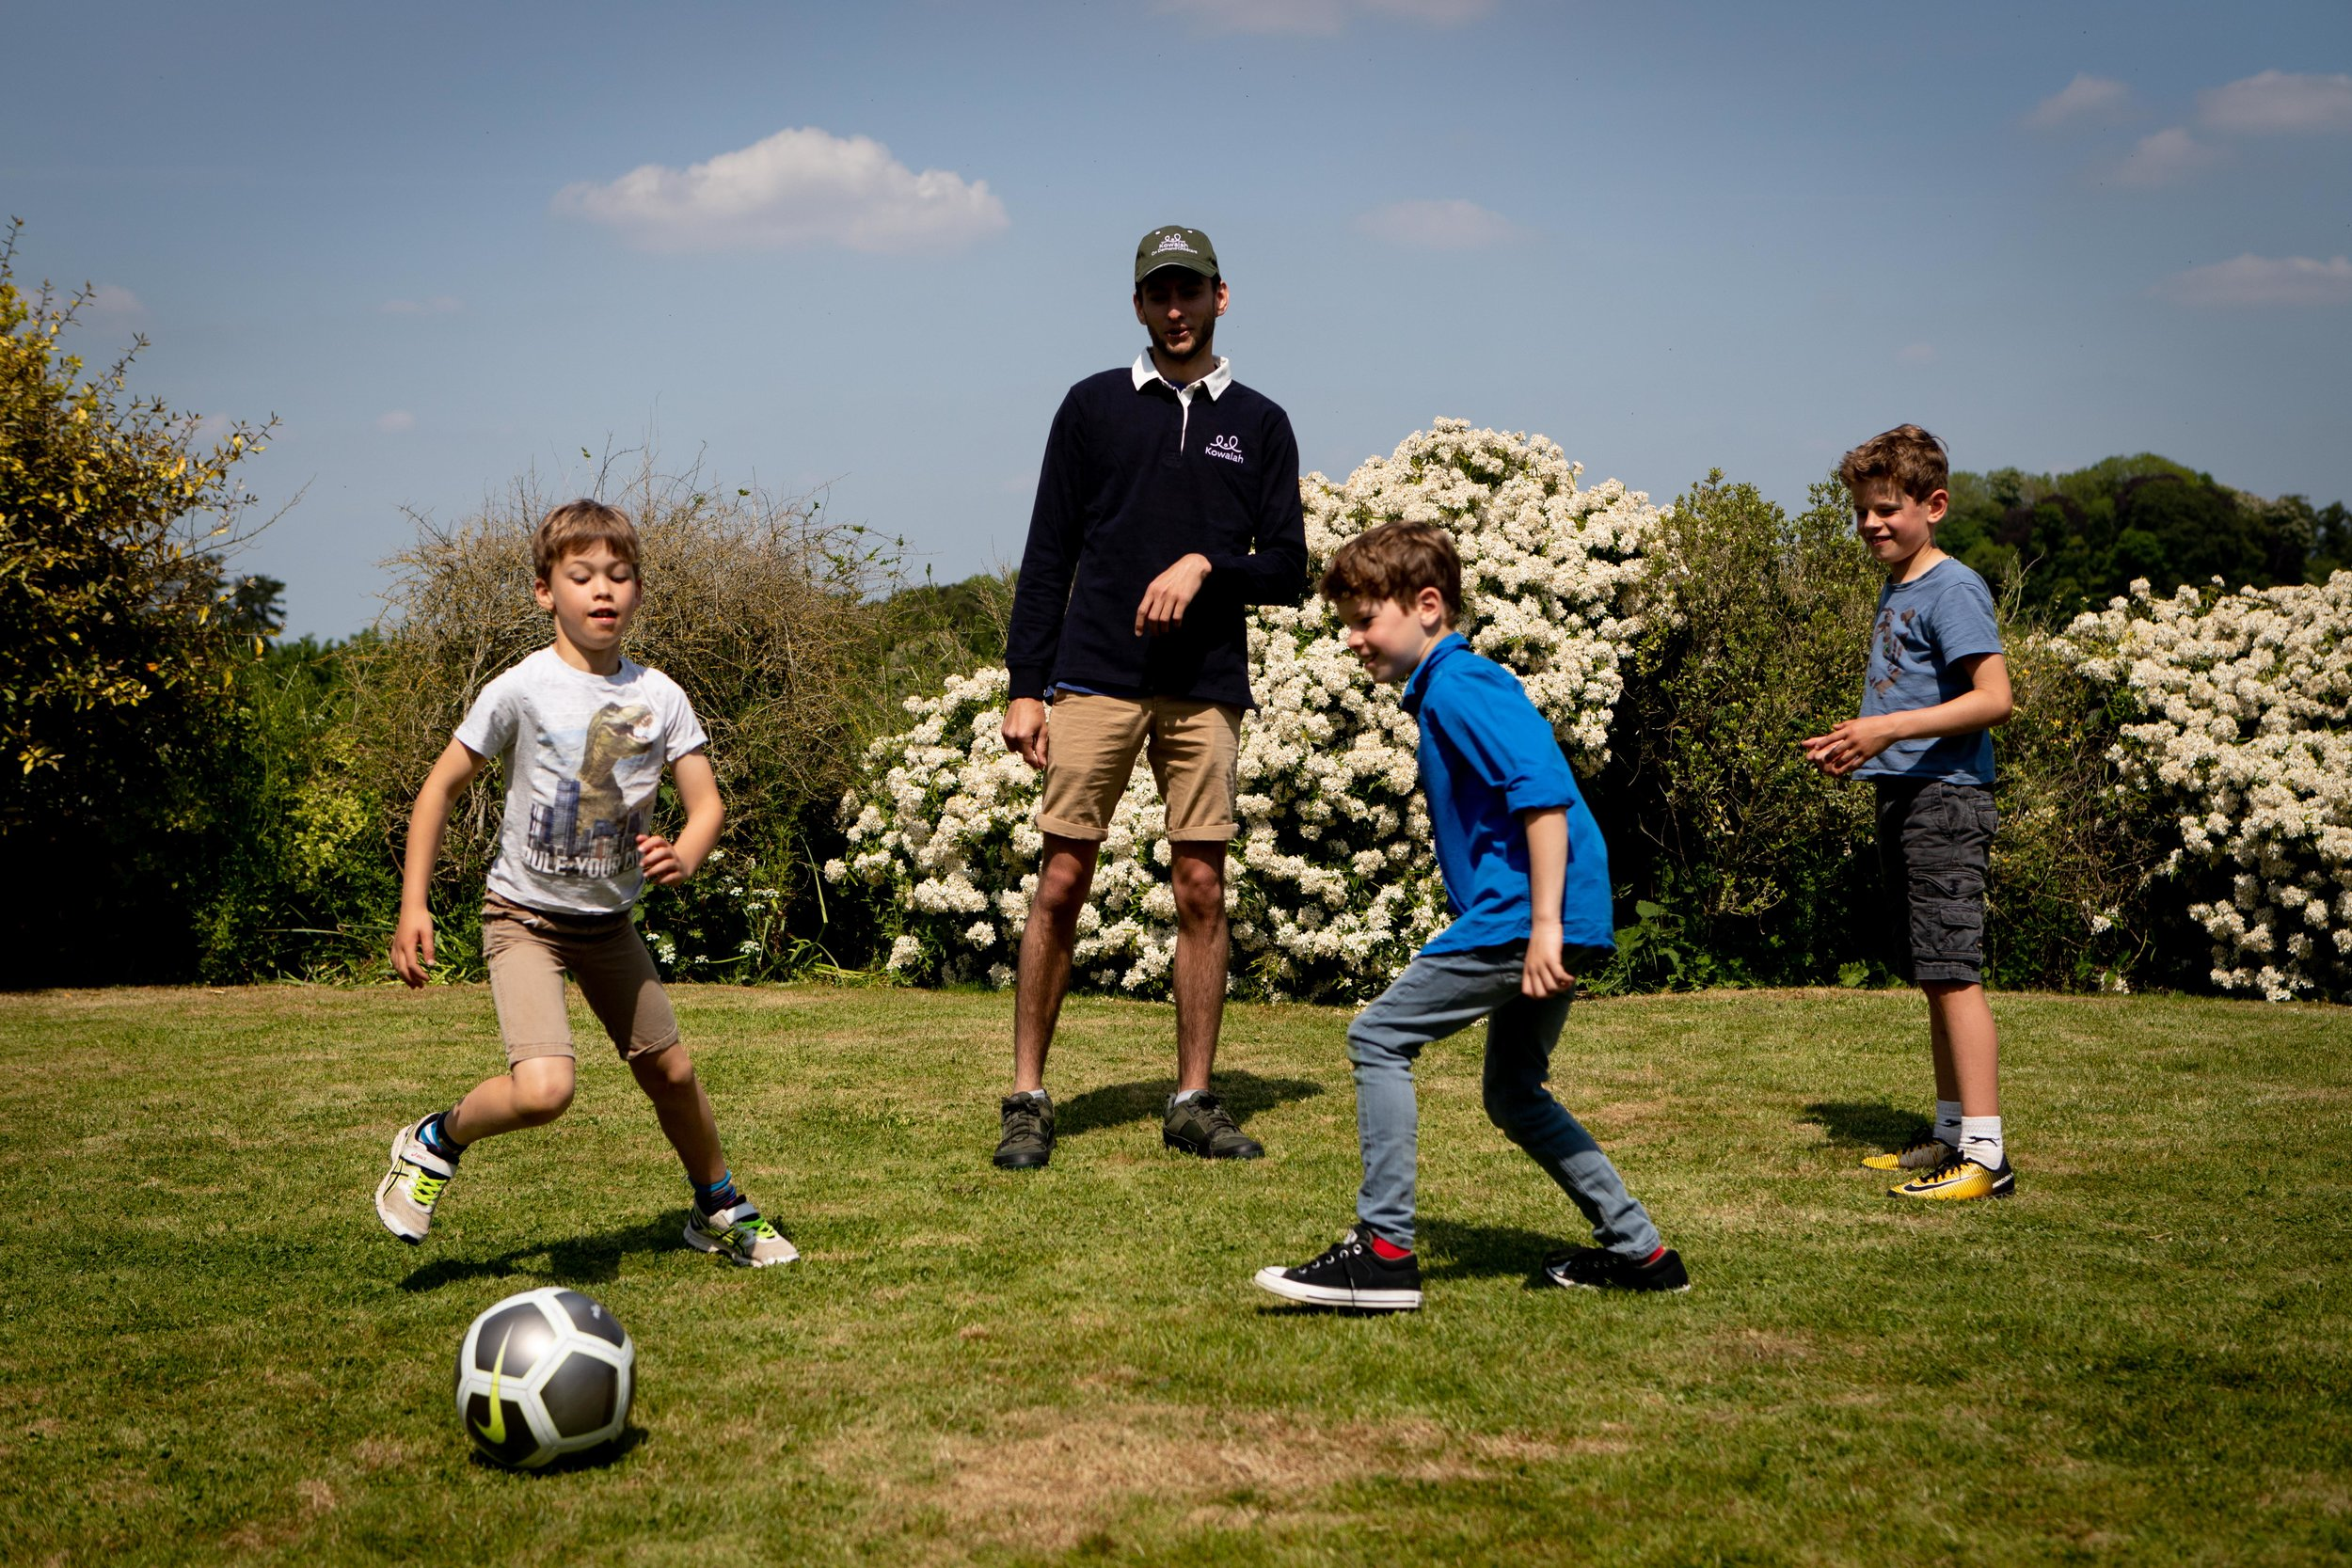 Jobs for the boys! - Kowalah is not just for girls. We love having male sitters on the platform - families with boys love having a male role model to play sport or build camps with their children.